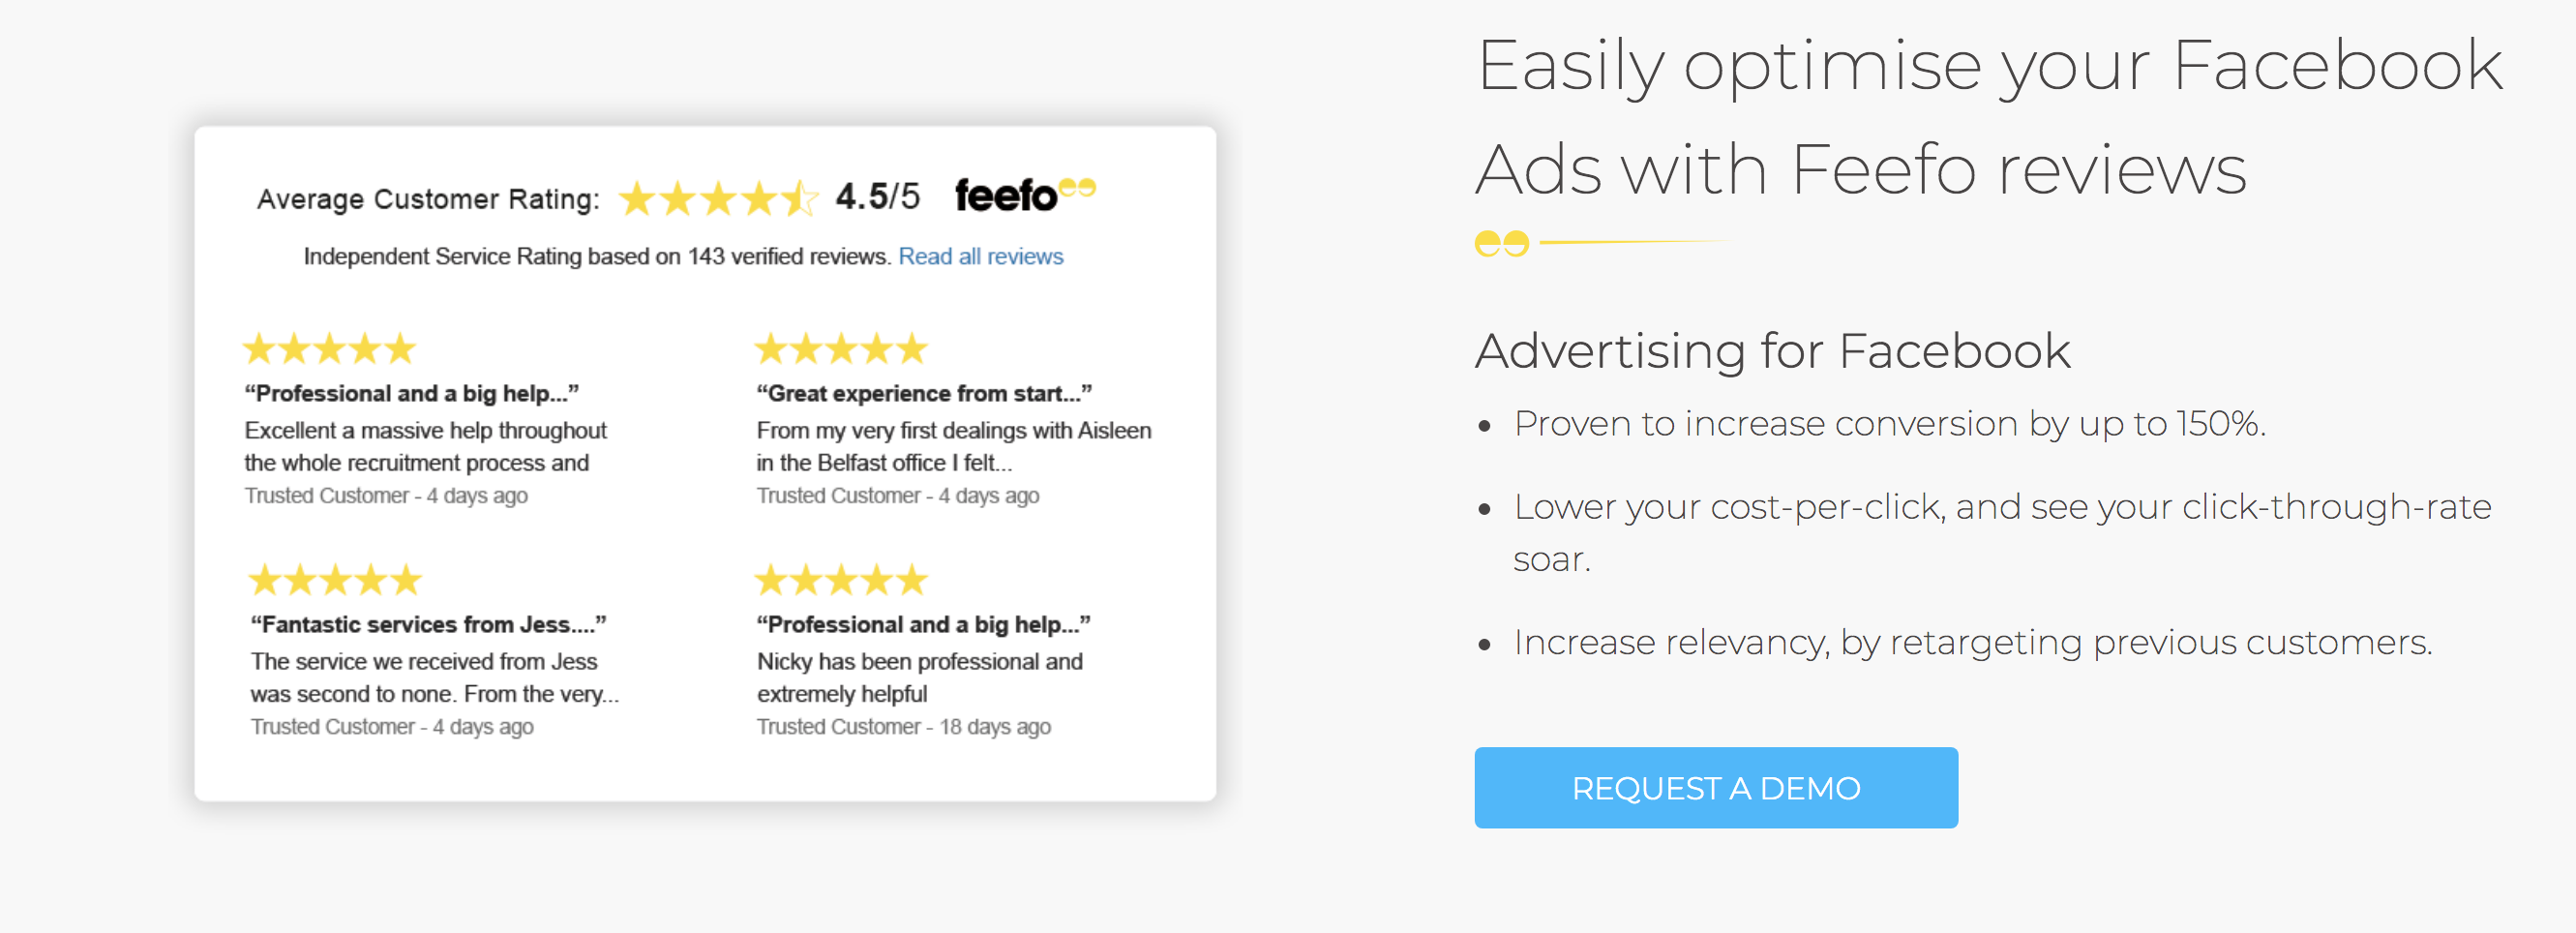 Customer reviews to ads